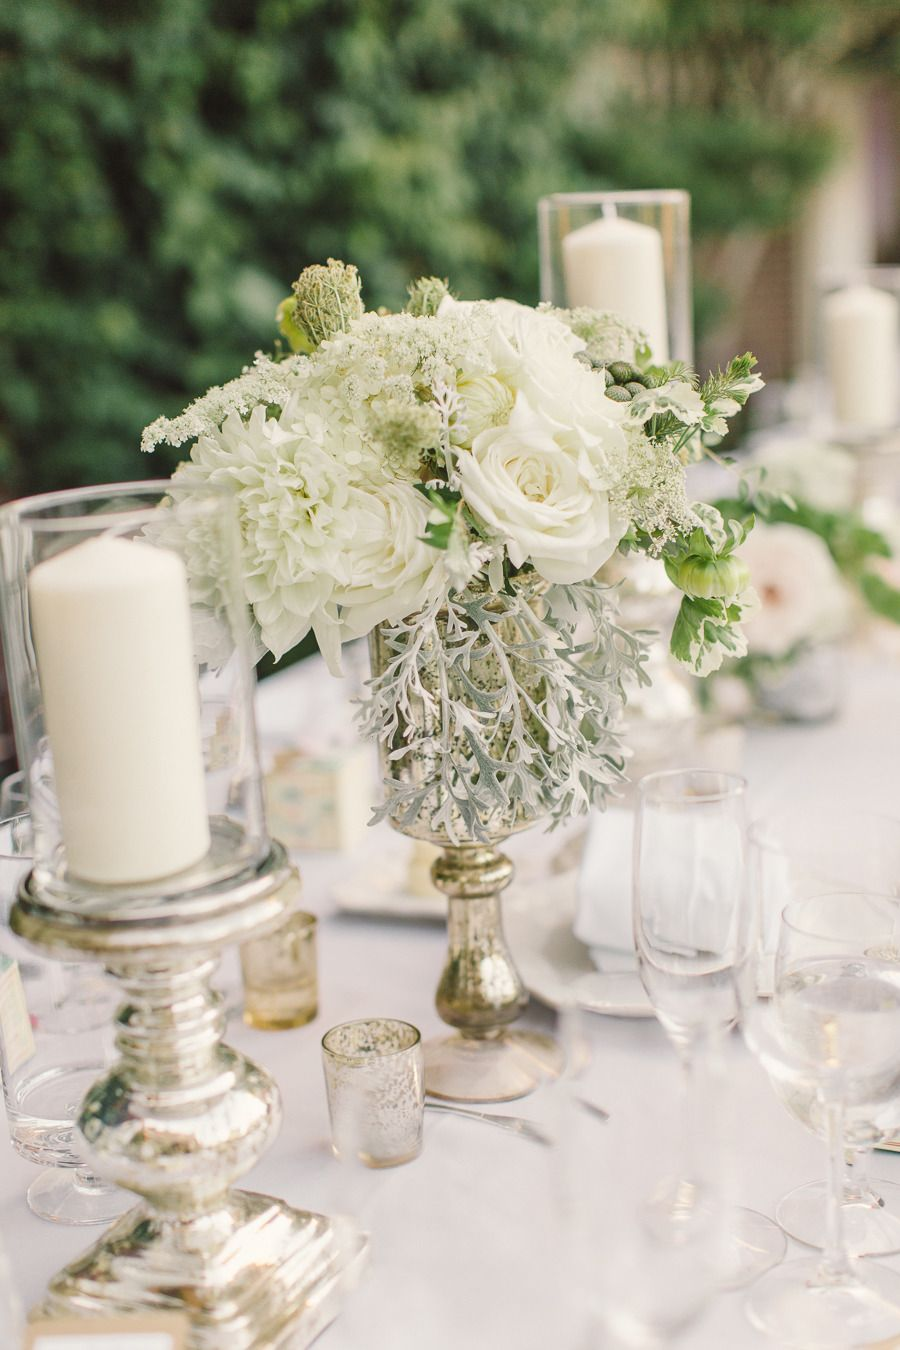 #centerpiece, #candle  Photography: Carlie Statsky Photography - carliestatsky.com  Read More: http://www.stylemepretty.com/2014/06/10/outdoor-elegance-at-the-kohl-mansion/